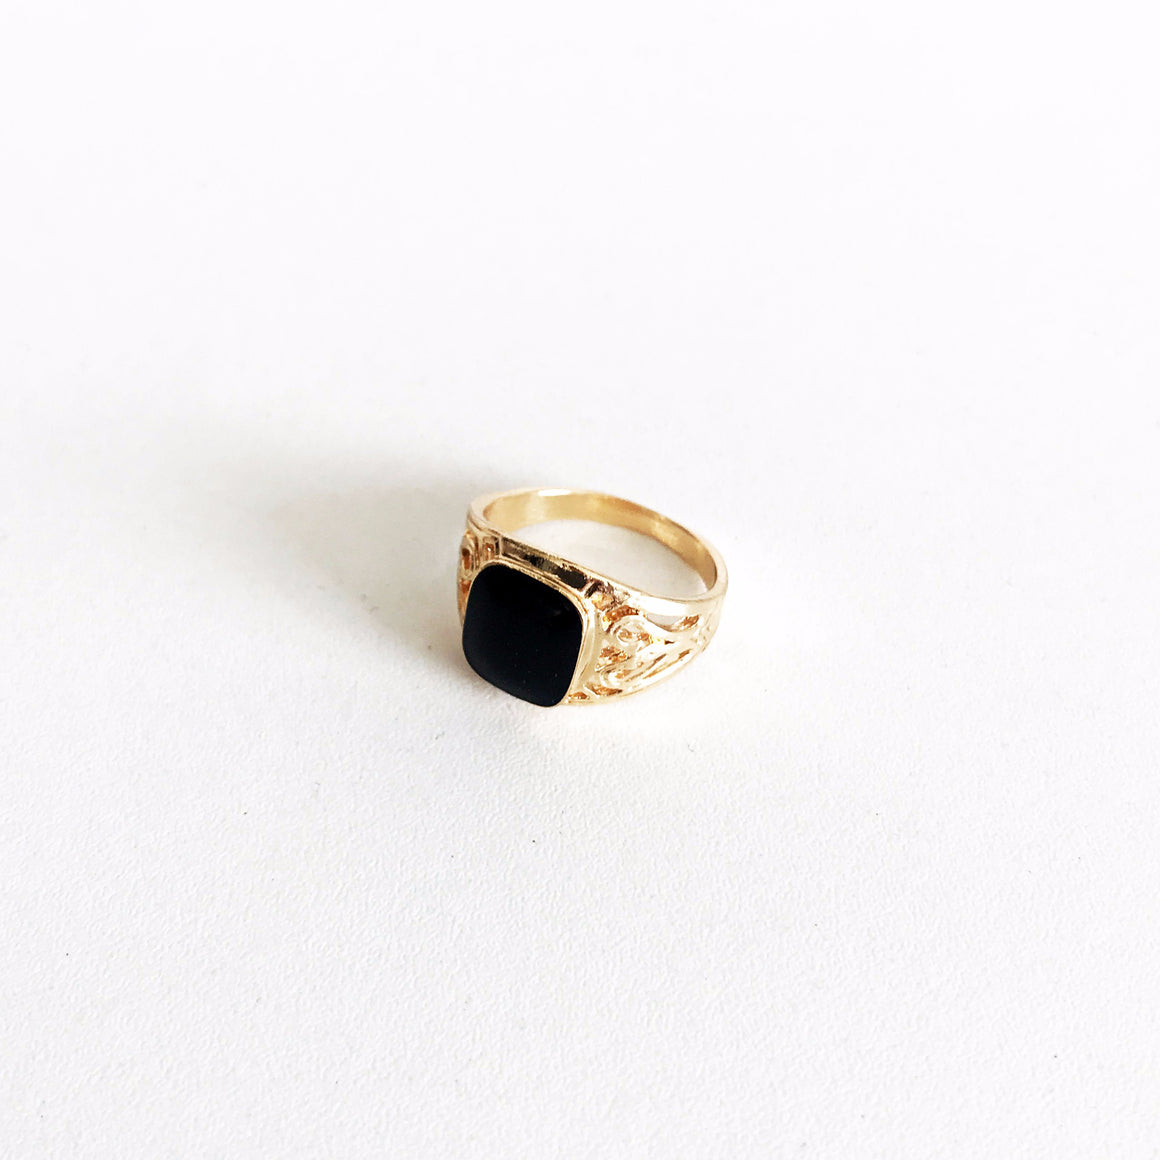 KEENA BLACK ORNATE SIGNET RING | GOLD